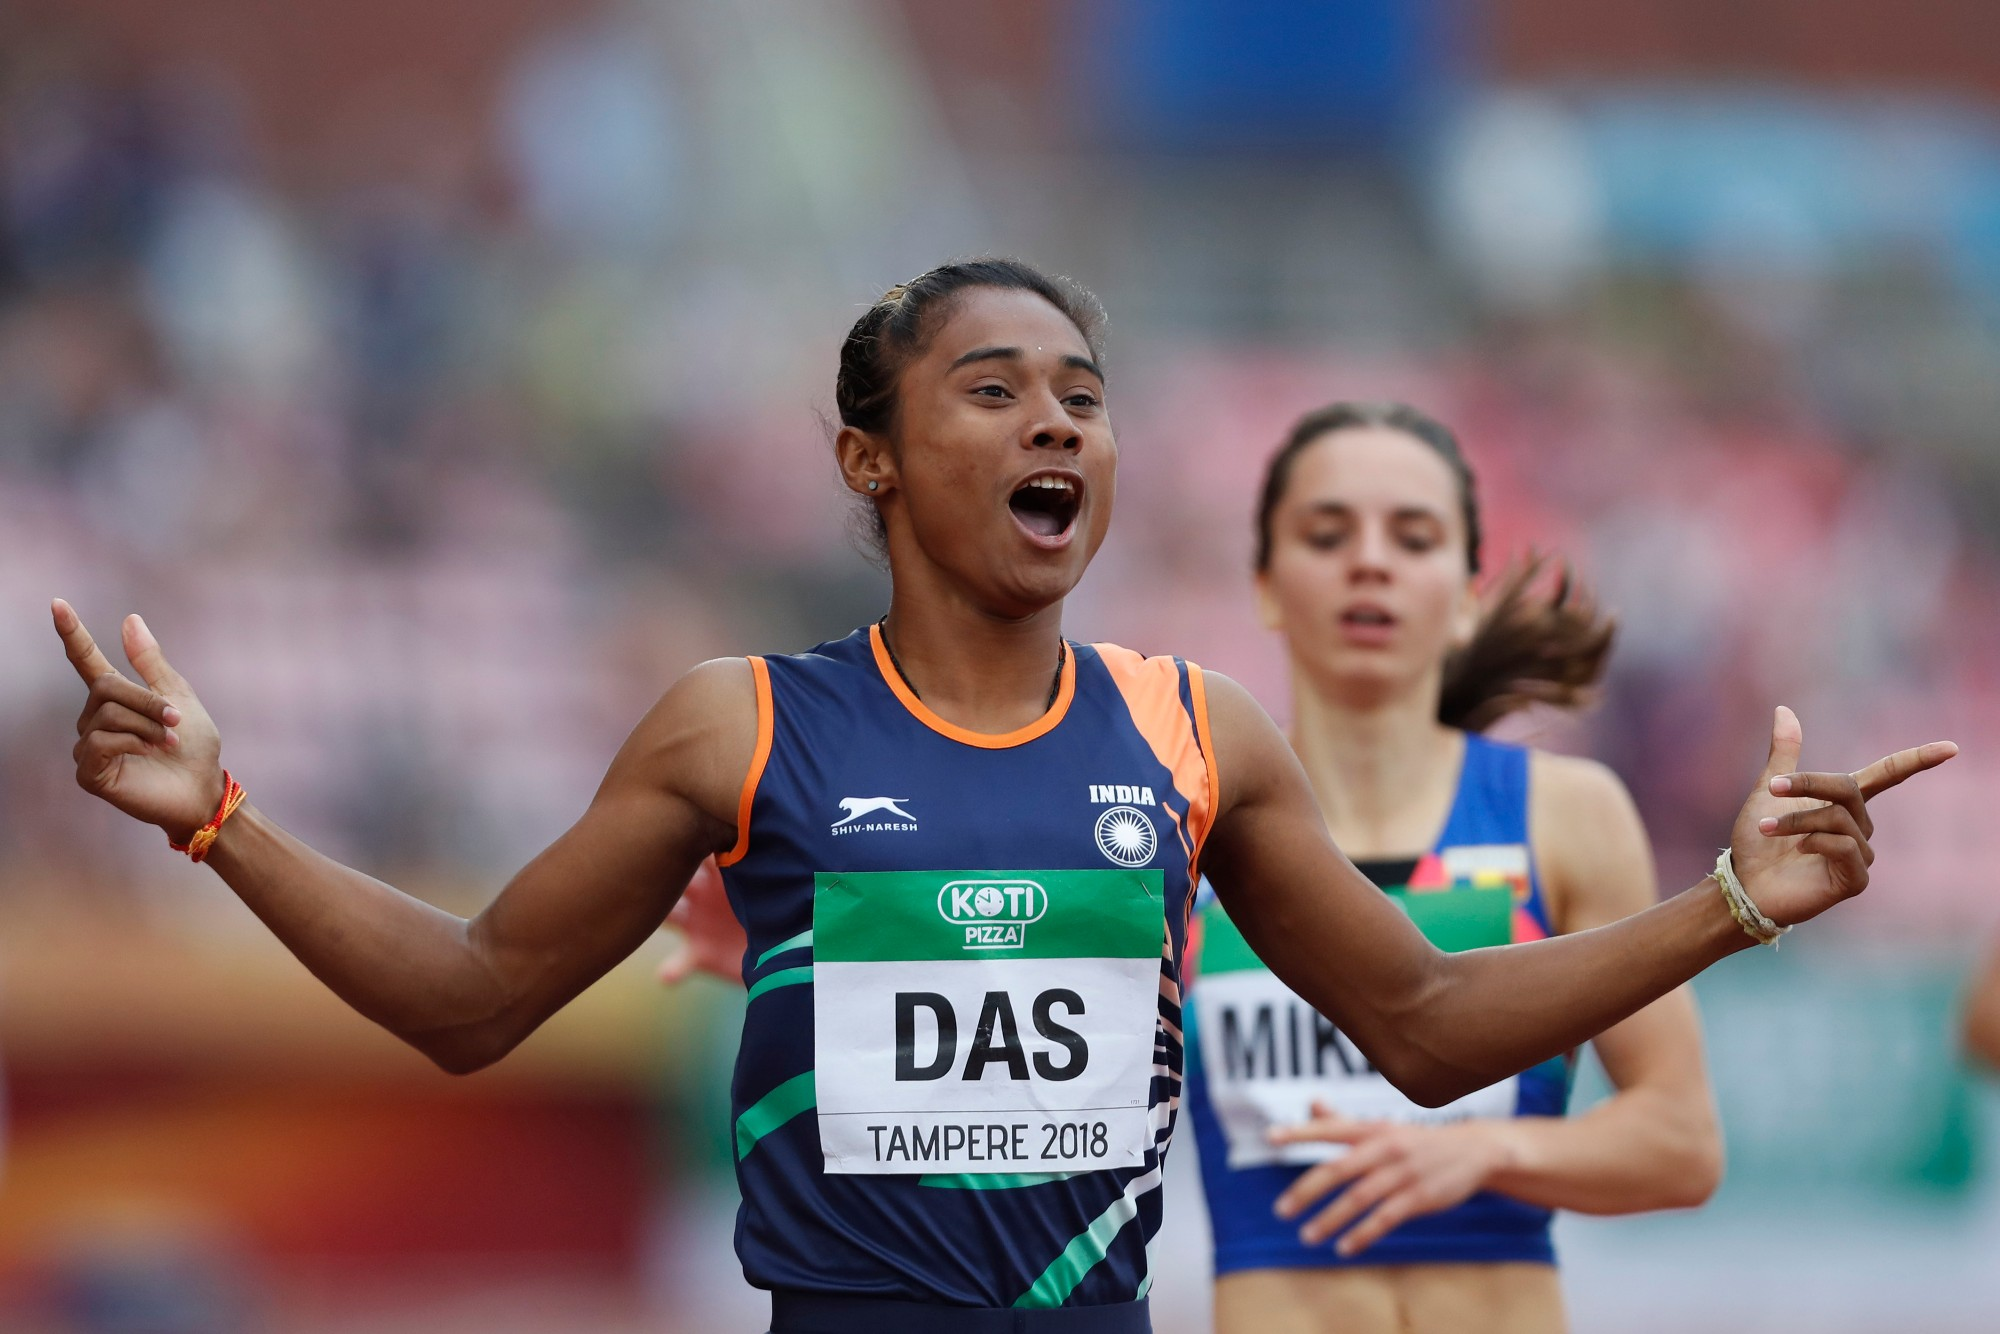 Hima Das of India wins gold medal